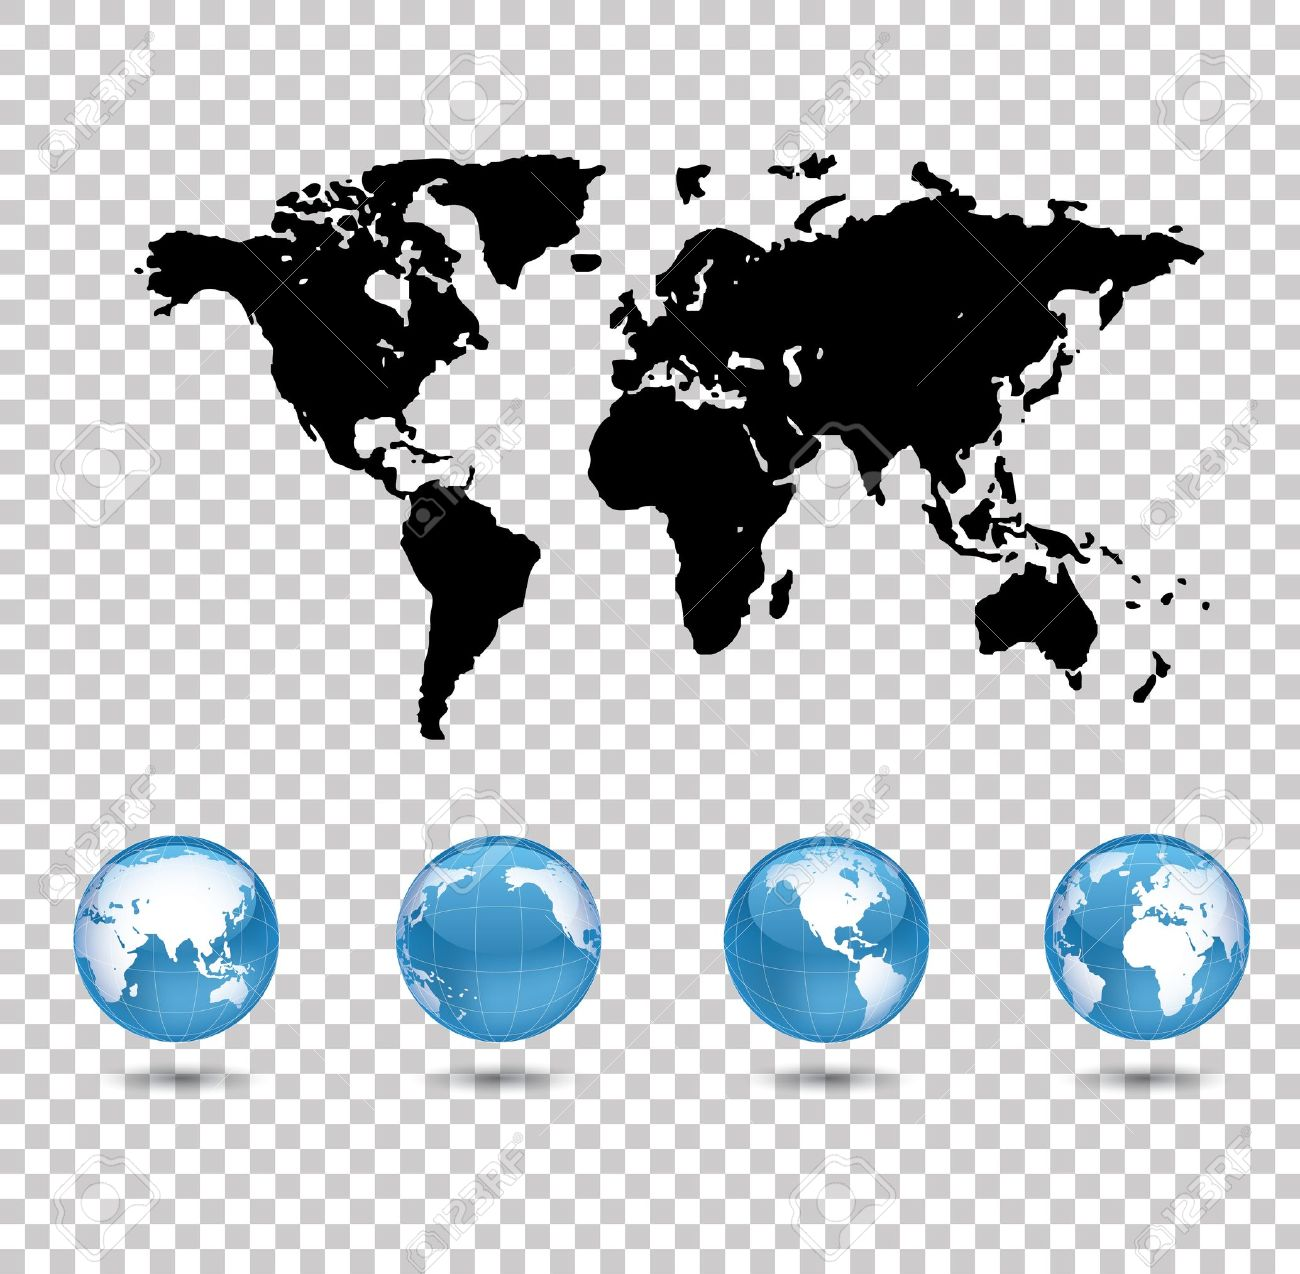 World map and four world globes on transparent background royalty vector world map and four world globes on transparent background gumiabroncs Gallery